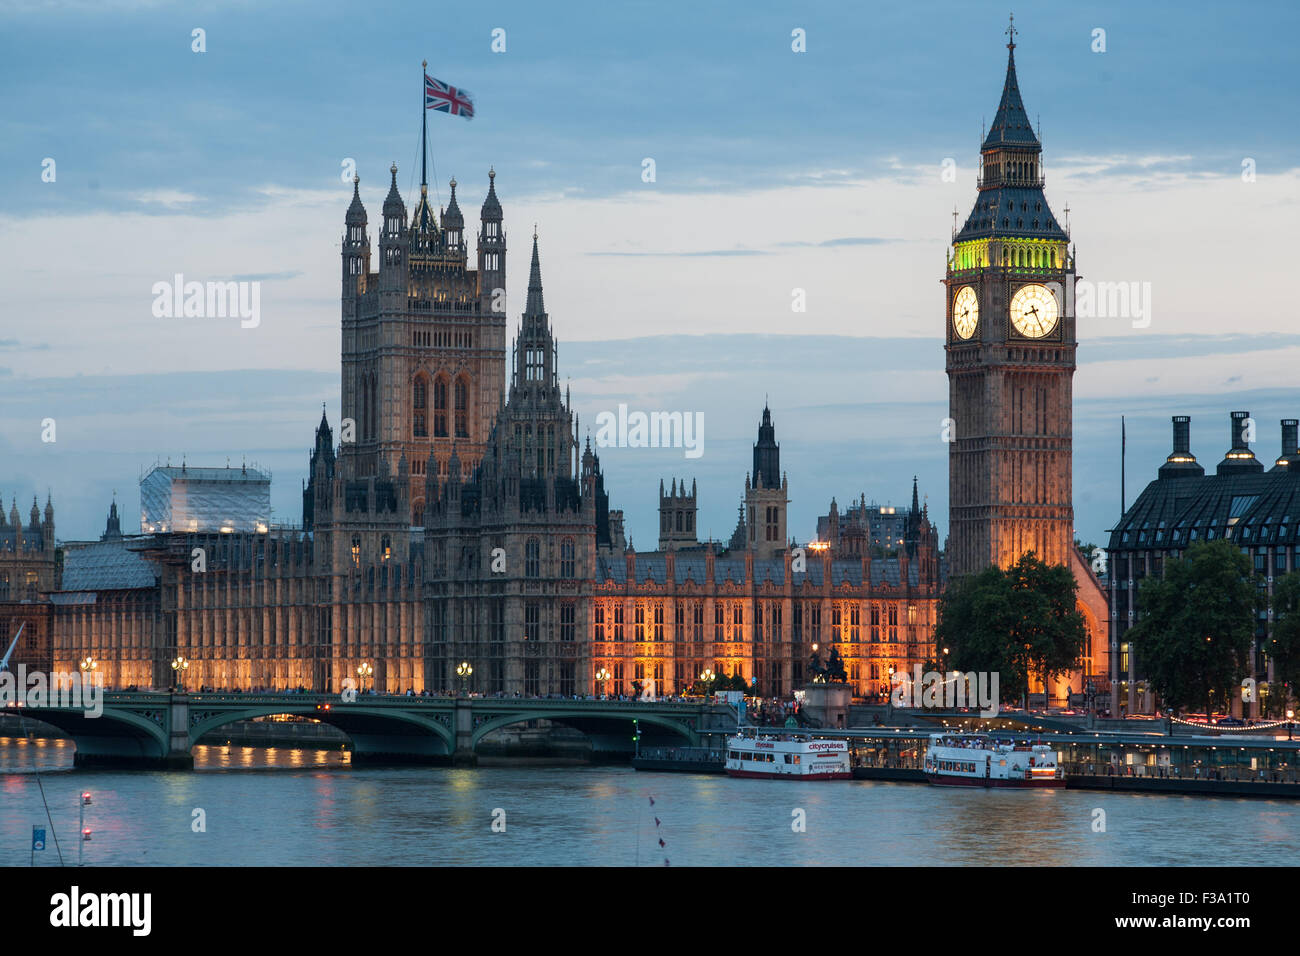 Big Ben and Houses or Parliament at night, Westminster, London - Stock Image